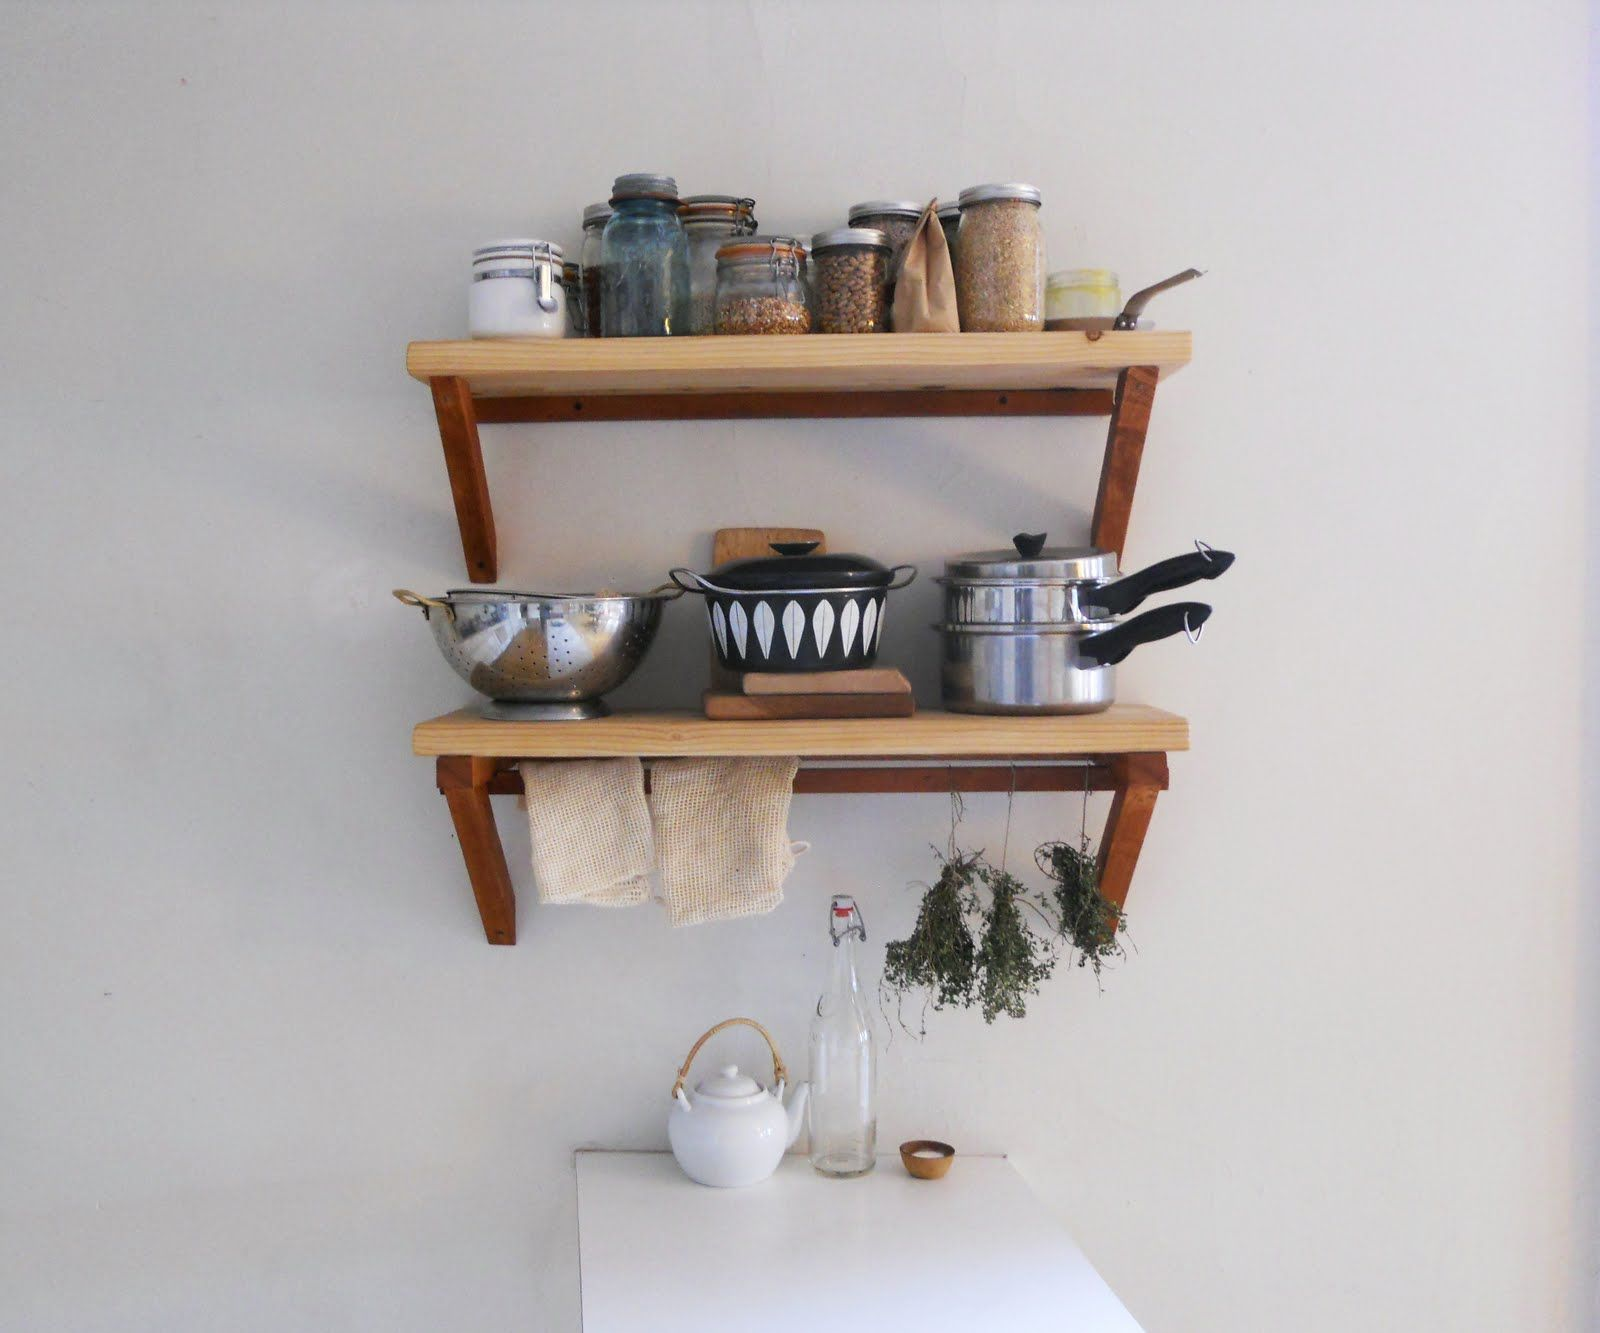 Accessories U0026 Furniture,Unusual Kitchen Hanging Shelving Systems With Small  Rectangular Oak Unfinished Appliance Hanging Shelf In White Wall  Paint,Stunning ...